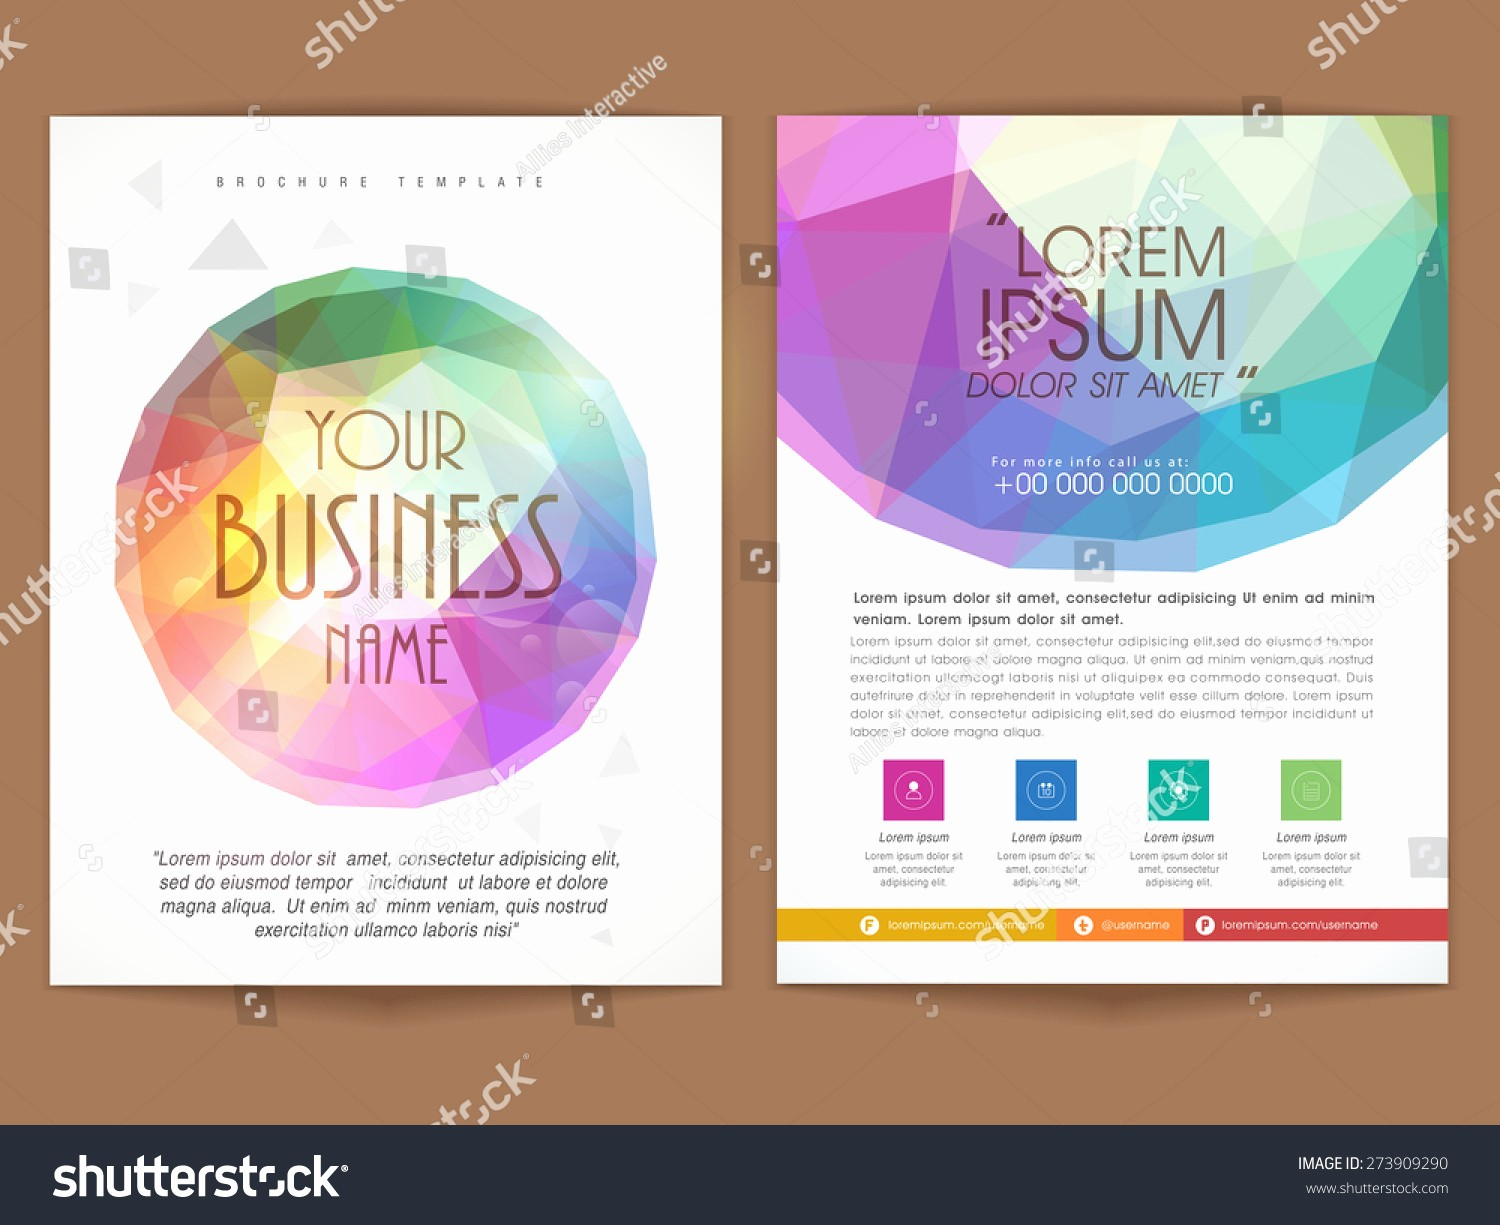 Free Brochure Templates for Mac Fresh Apple Flyer Templates Yourweek 20d29aeca25e